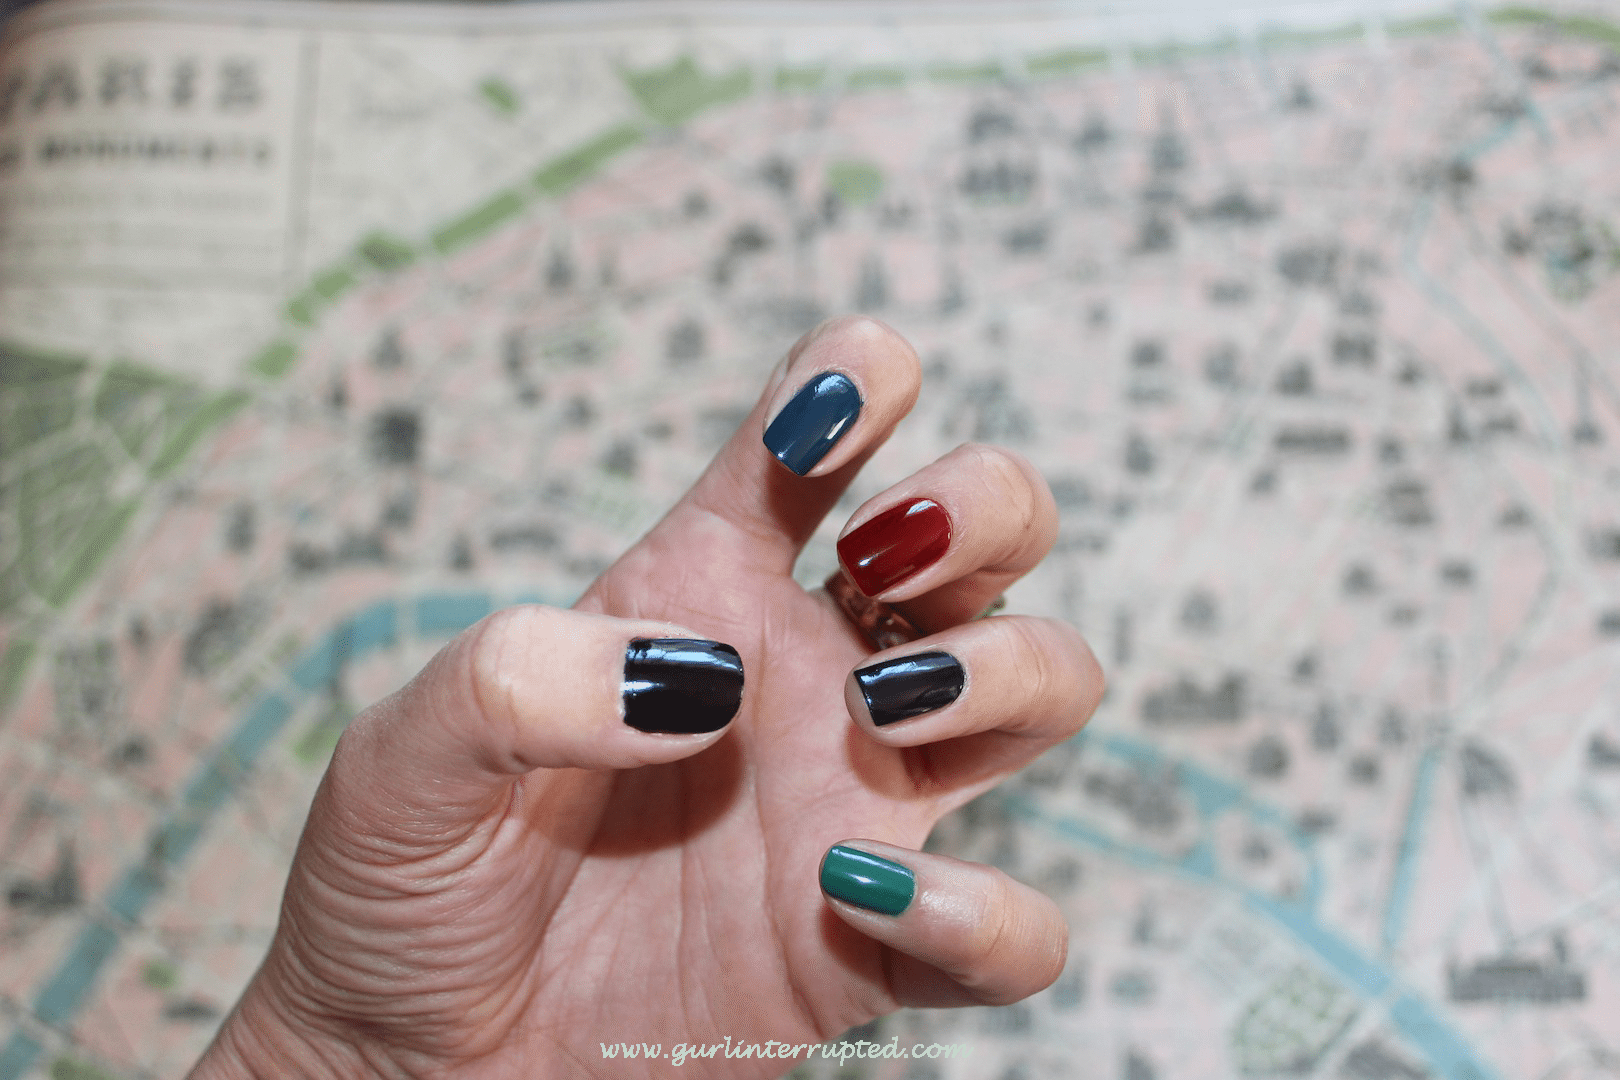 Bejewelled Nails and Jewel Tones Manicure, nails, nail polish, nail art, nail design, OPI, OPI Nail Polish NZ, beauty, beauty blog nz, fashion blog nz, style blog nz, angie fredatovich, gurlinterrupted, girl interrupted, jewels, accessories nz